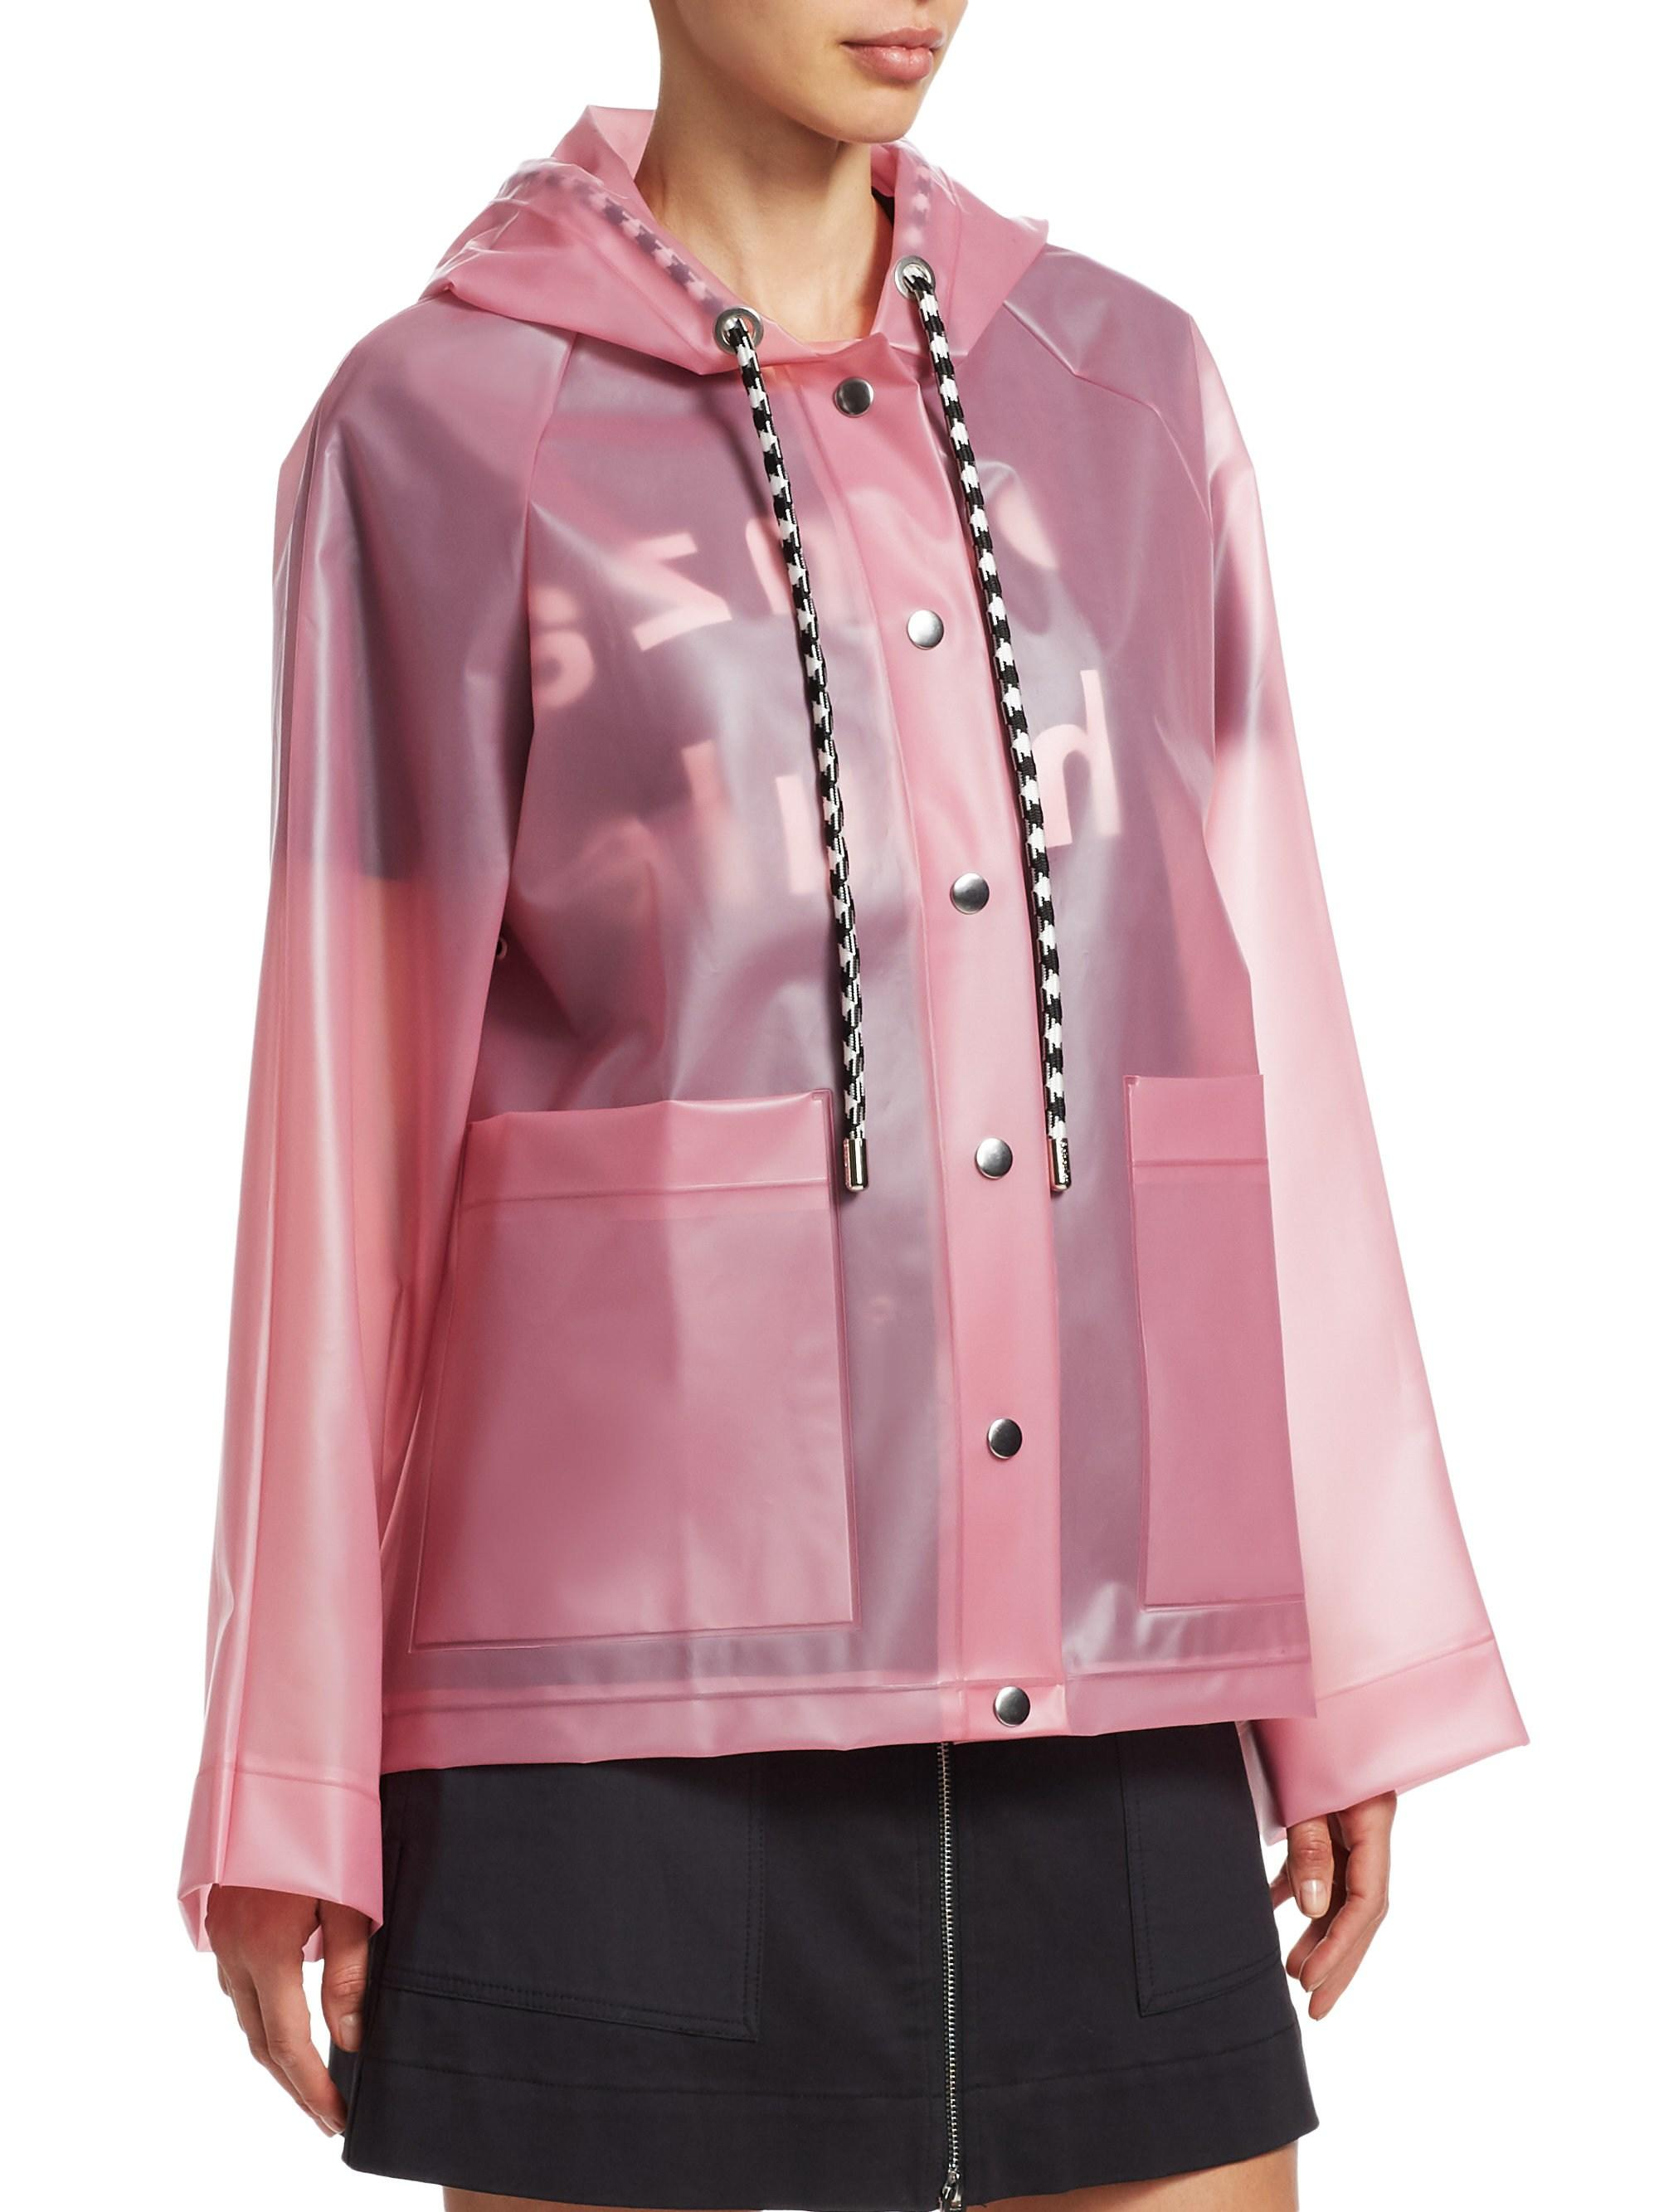 2ac8b31eea9f0 Proenza Schouler Pink Polyurethane Outerwear Jacket in Pink - Save 54% -  Lyst